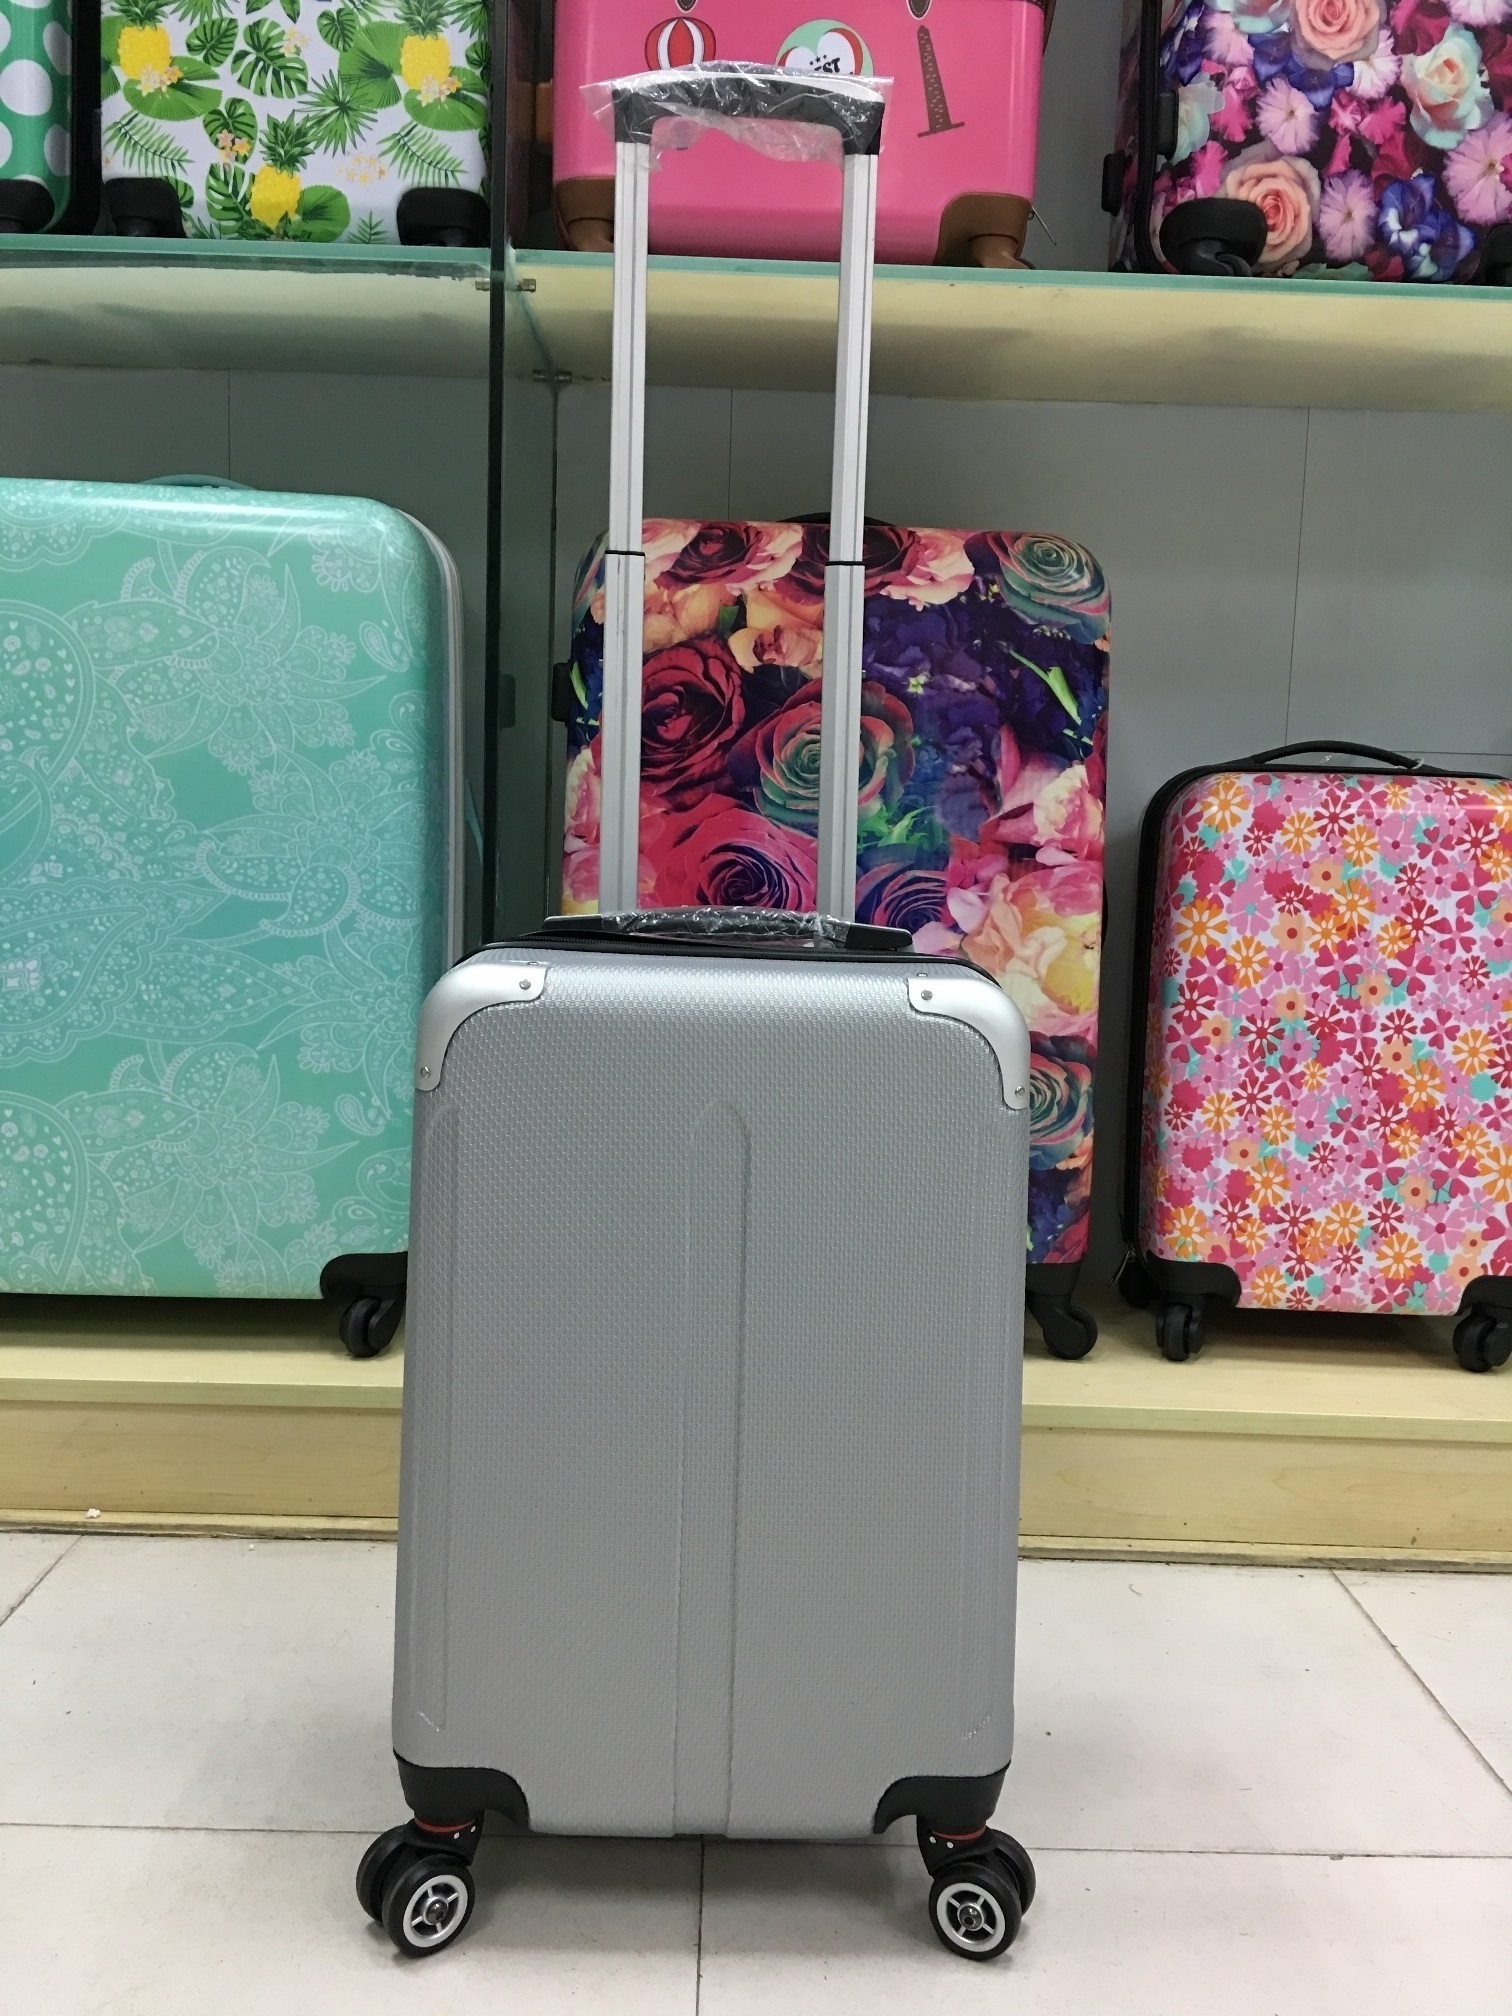 yanteng strong hand luggage with durable shells